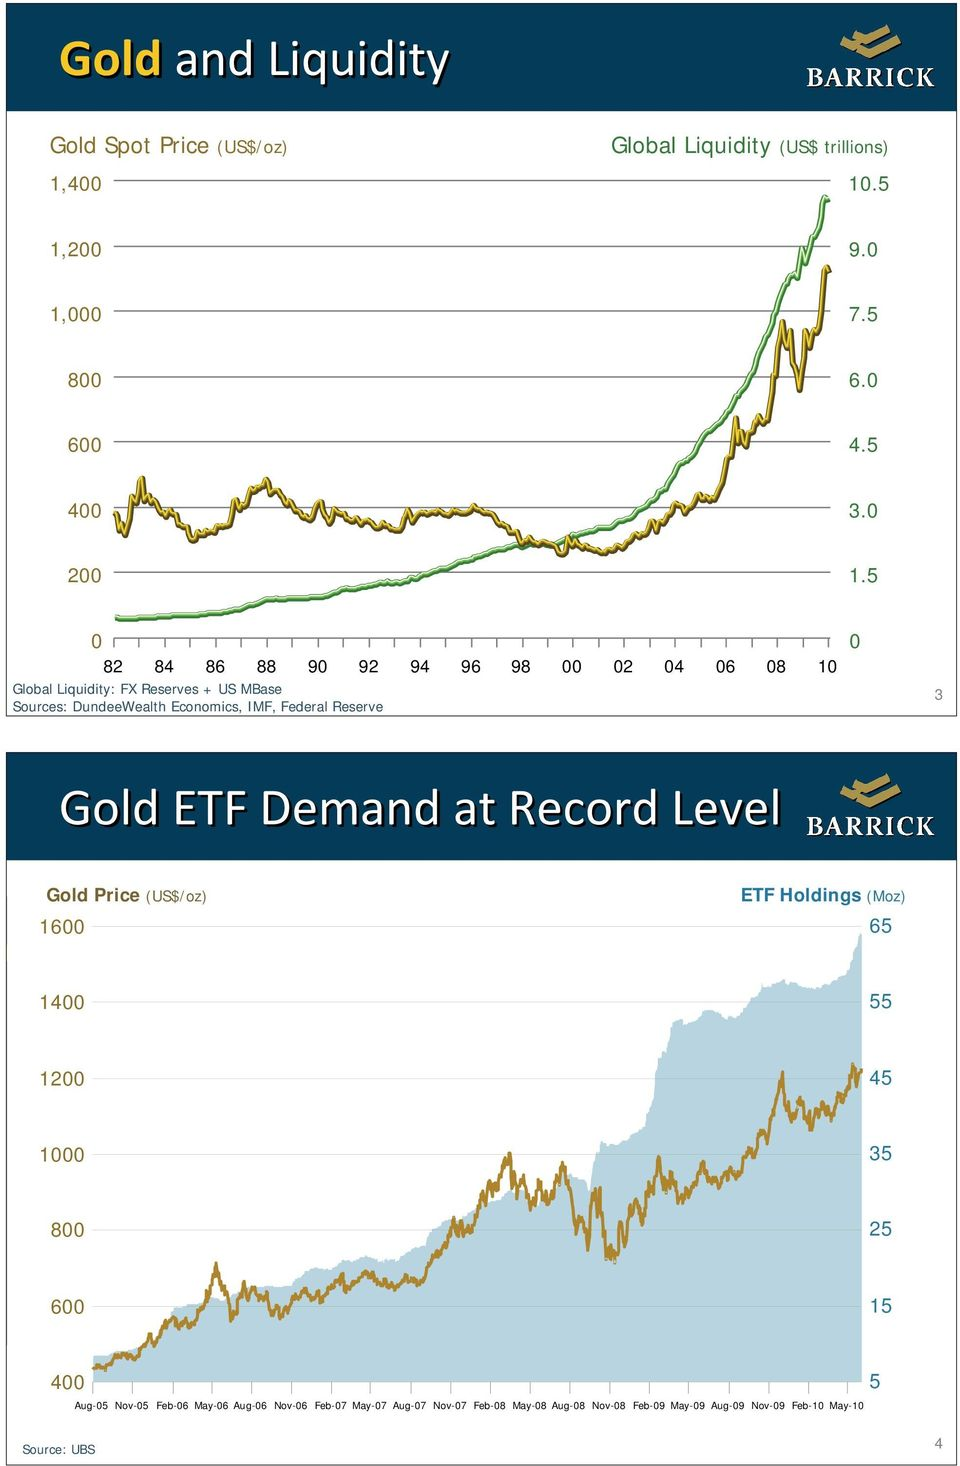 Reserve 0 3 Gold ETF Demand at Record Level Gold Price (US$/oz) 1600 ETF Holdings (Moz) 65 1400 55 1200 45 1000 35 800 25 600 15 400 Aug-05